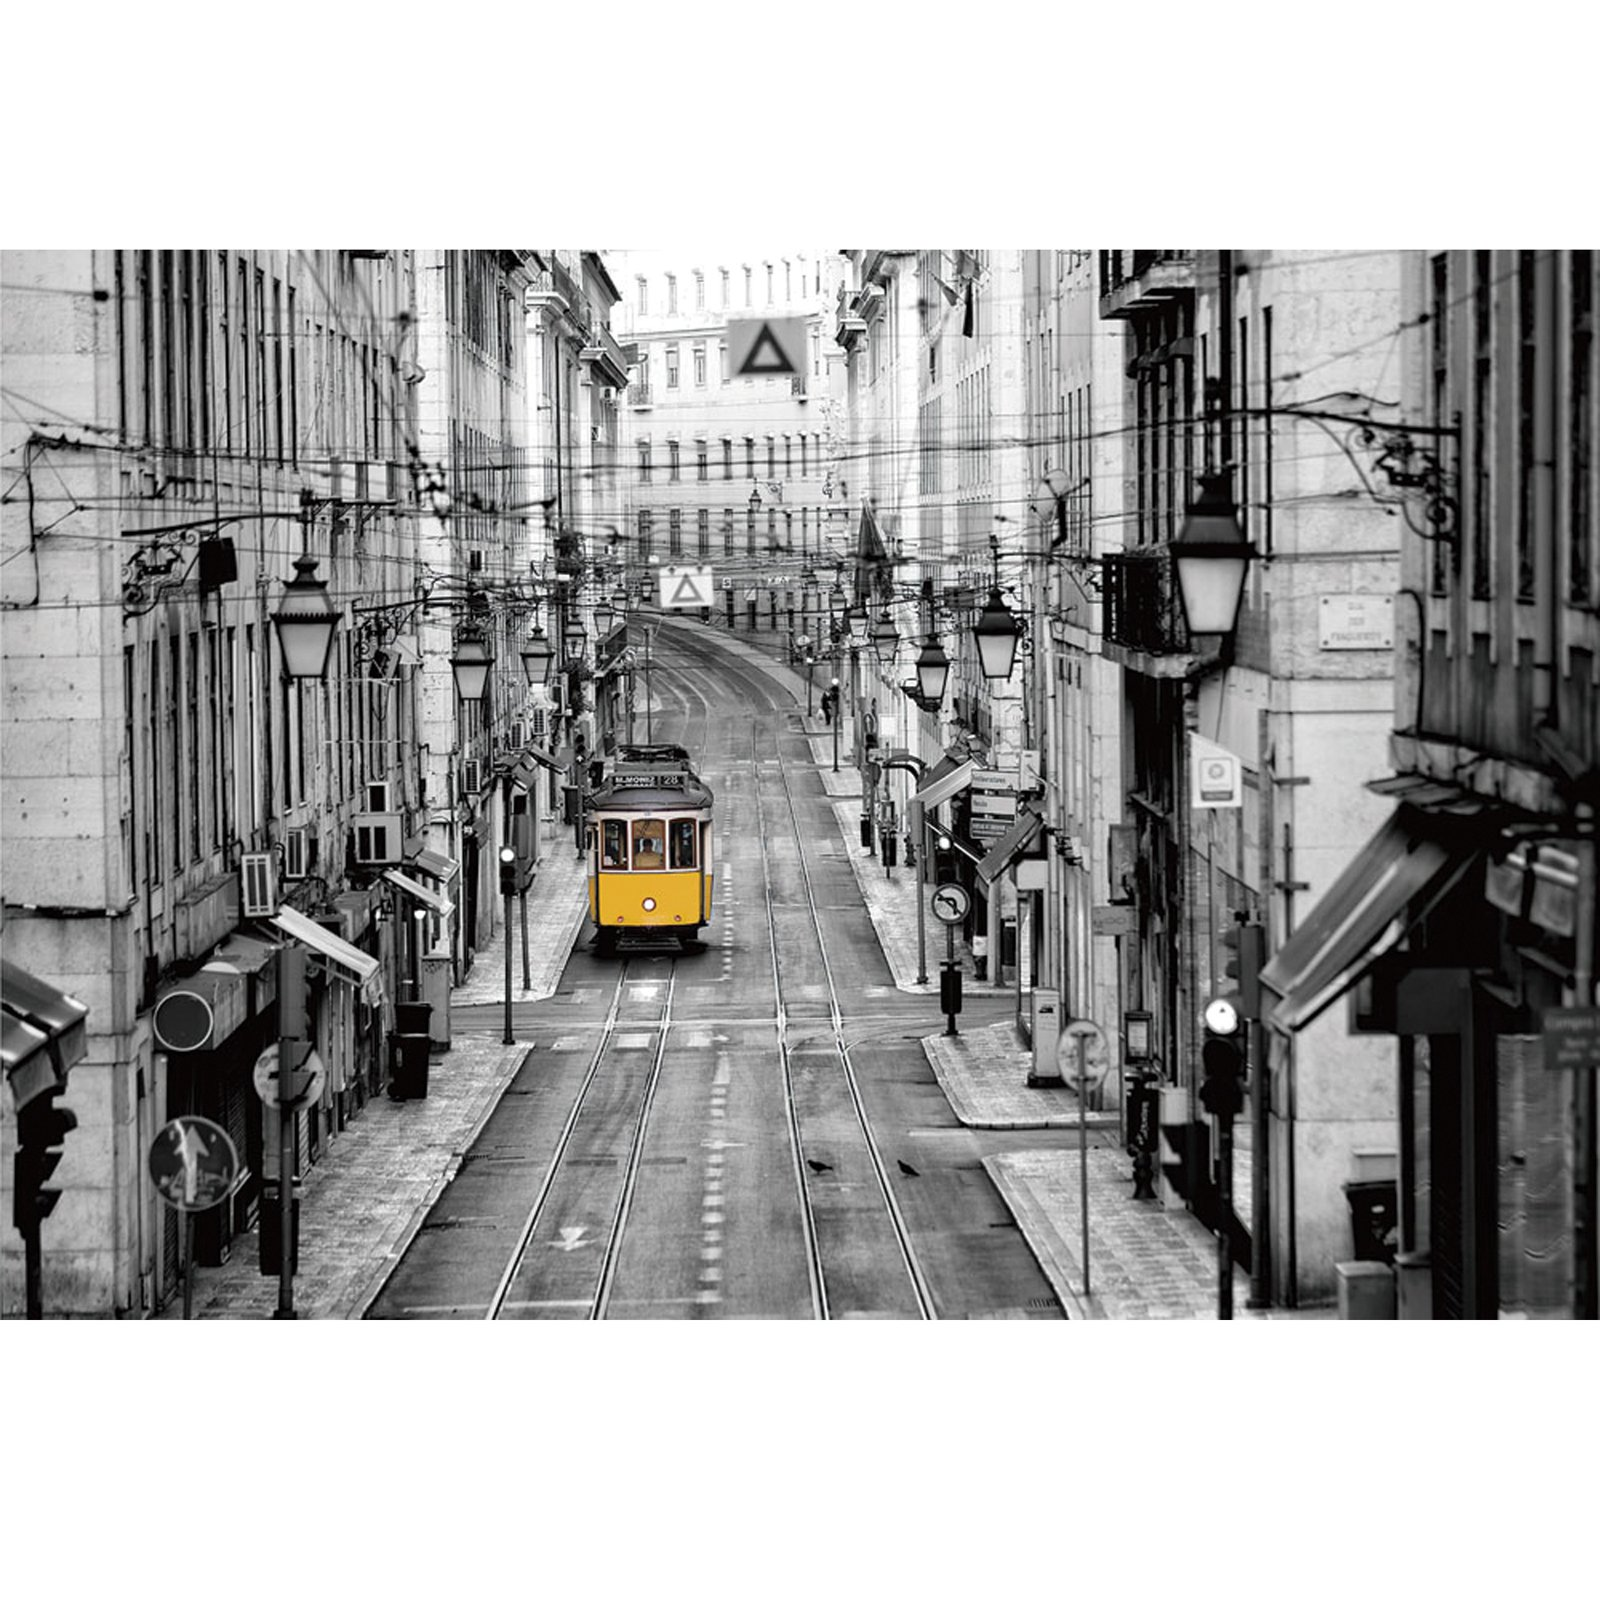 Yosemite Home Decor Trolly Car Wall Art Walmart Com